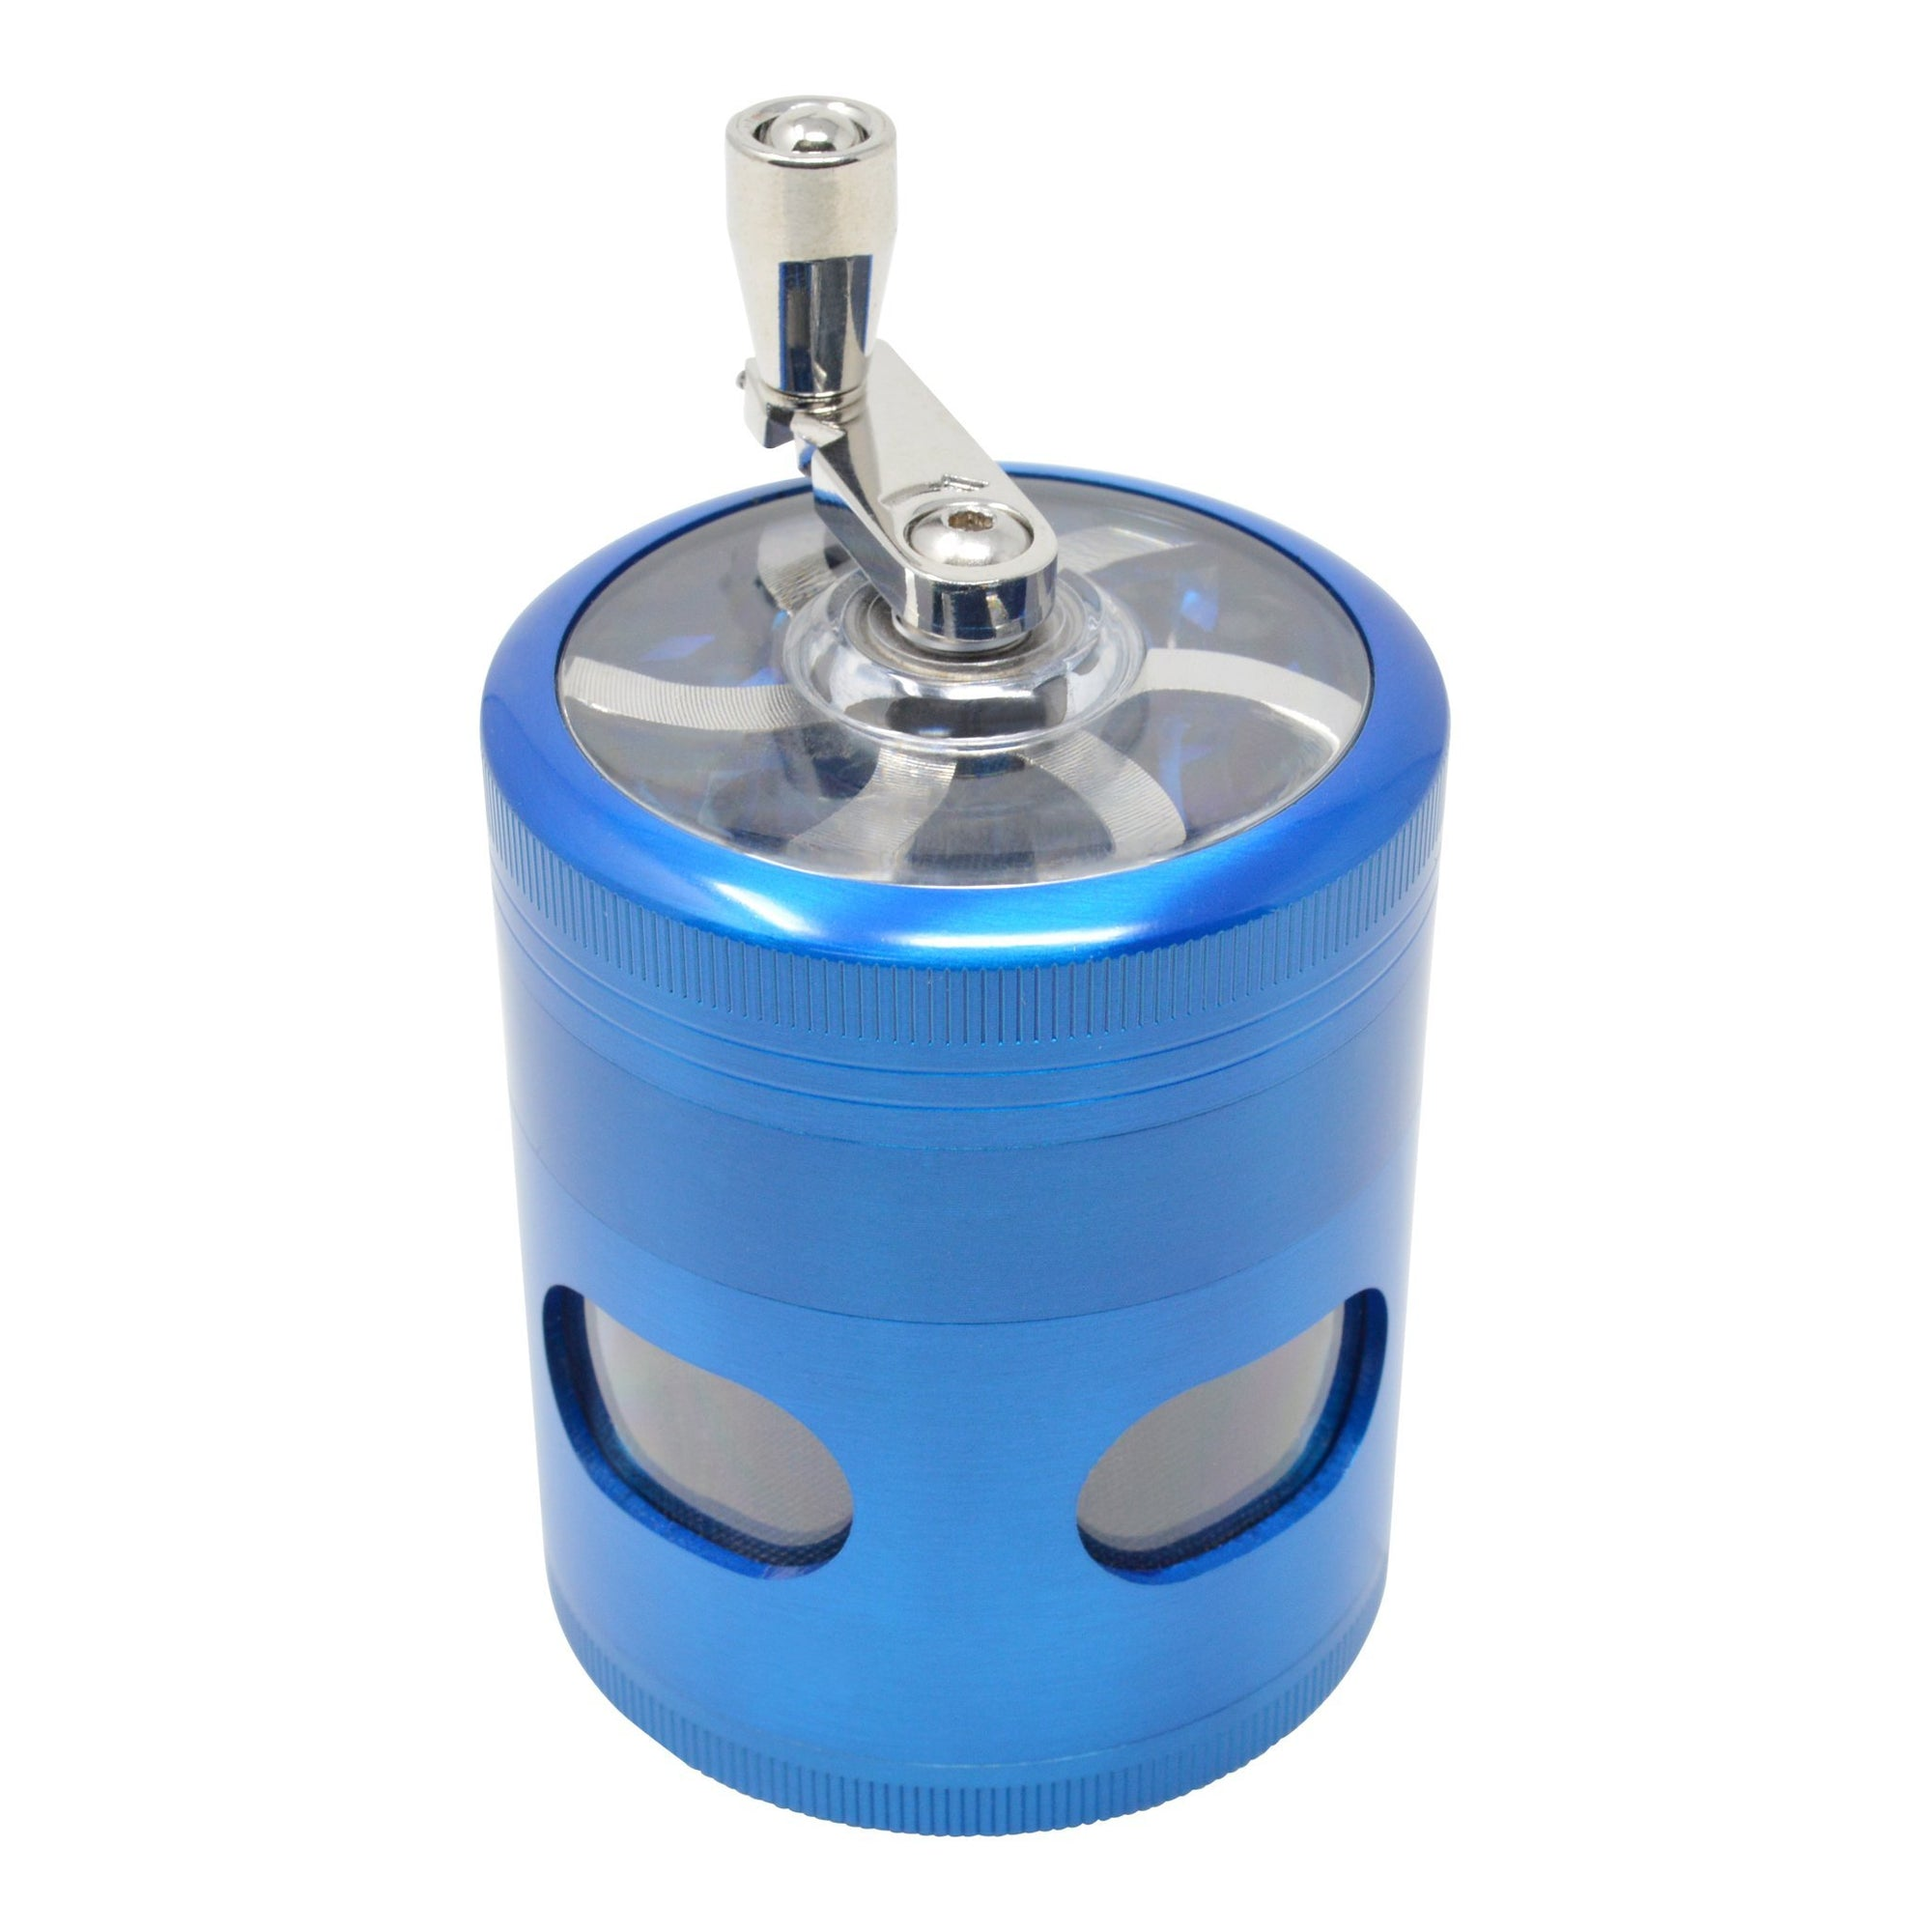 High angle shot of shiny blue 56mm dubs grinder smoking accessory with hand crank mechanical sharpener look